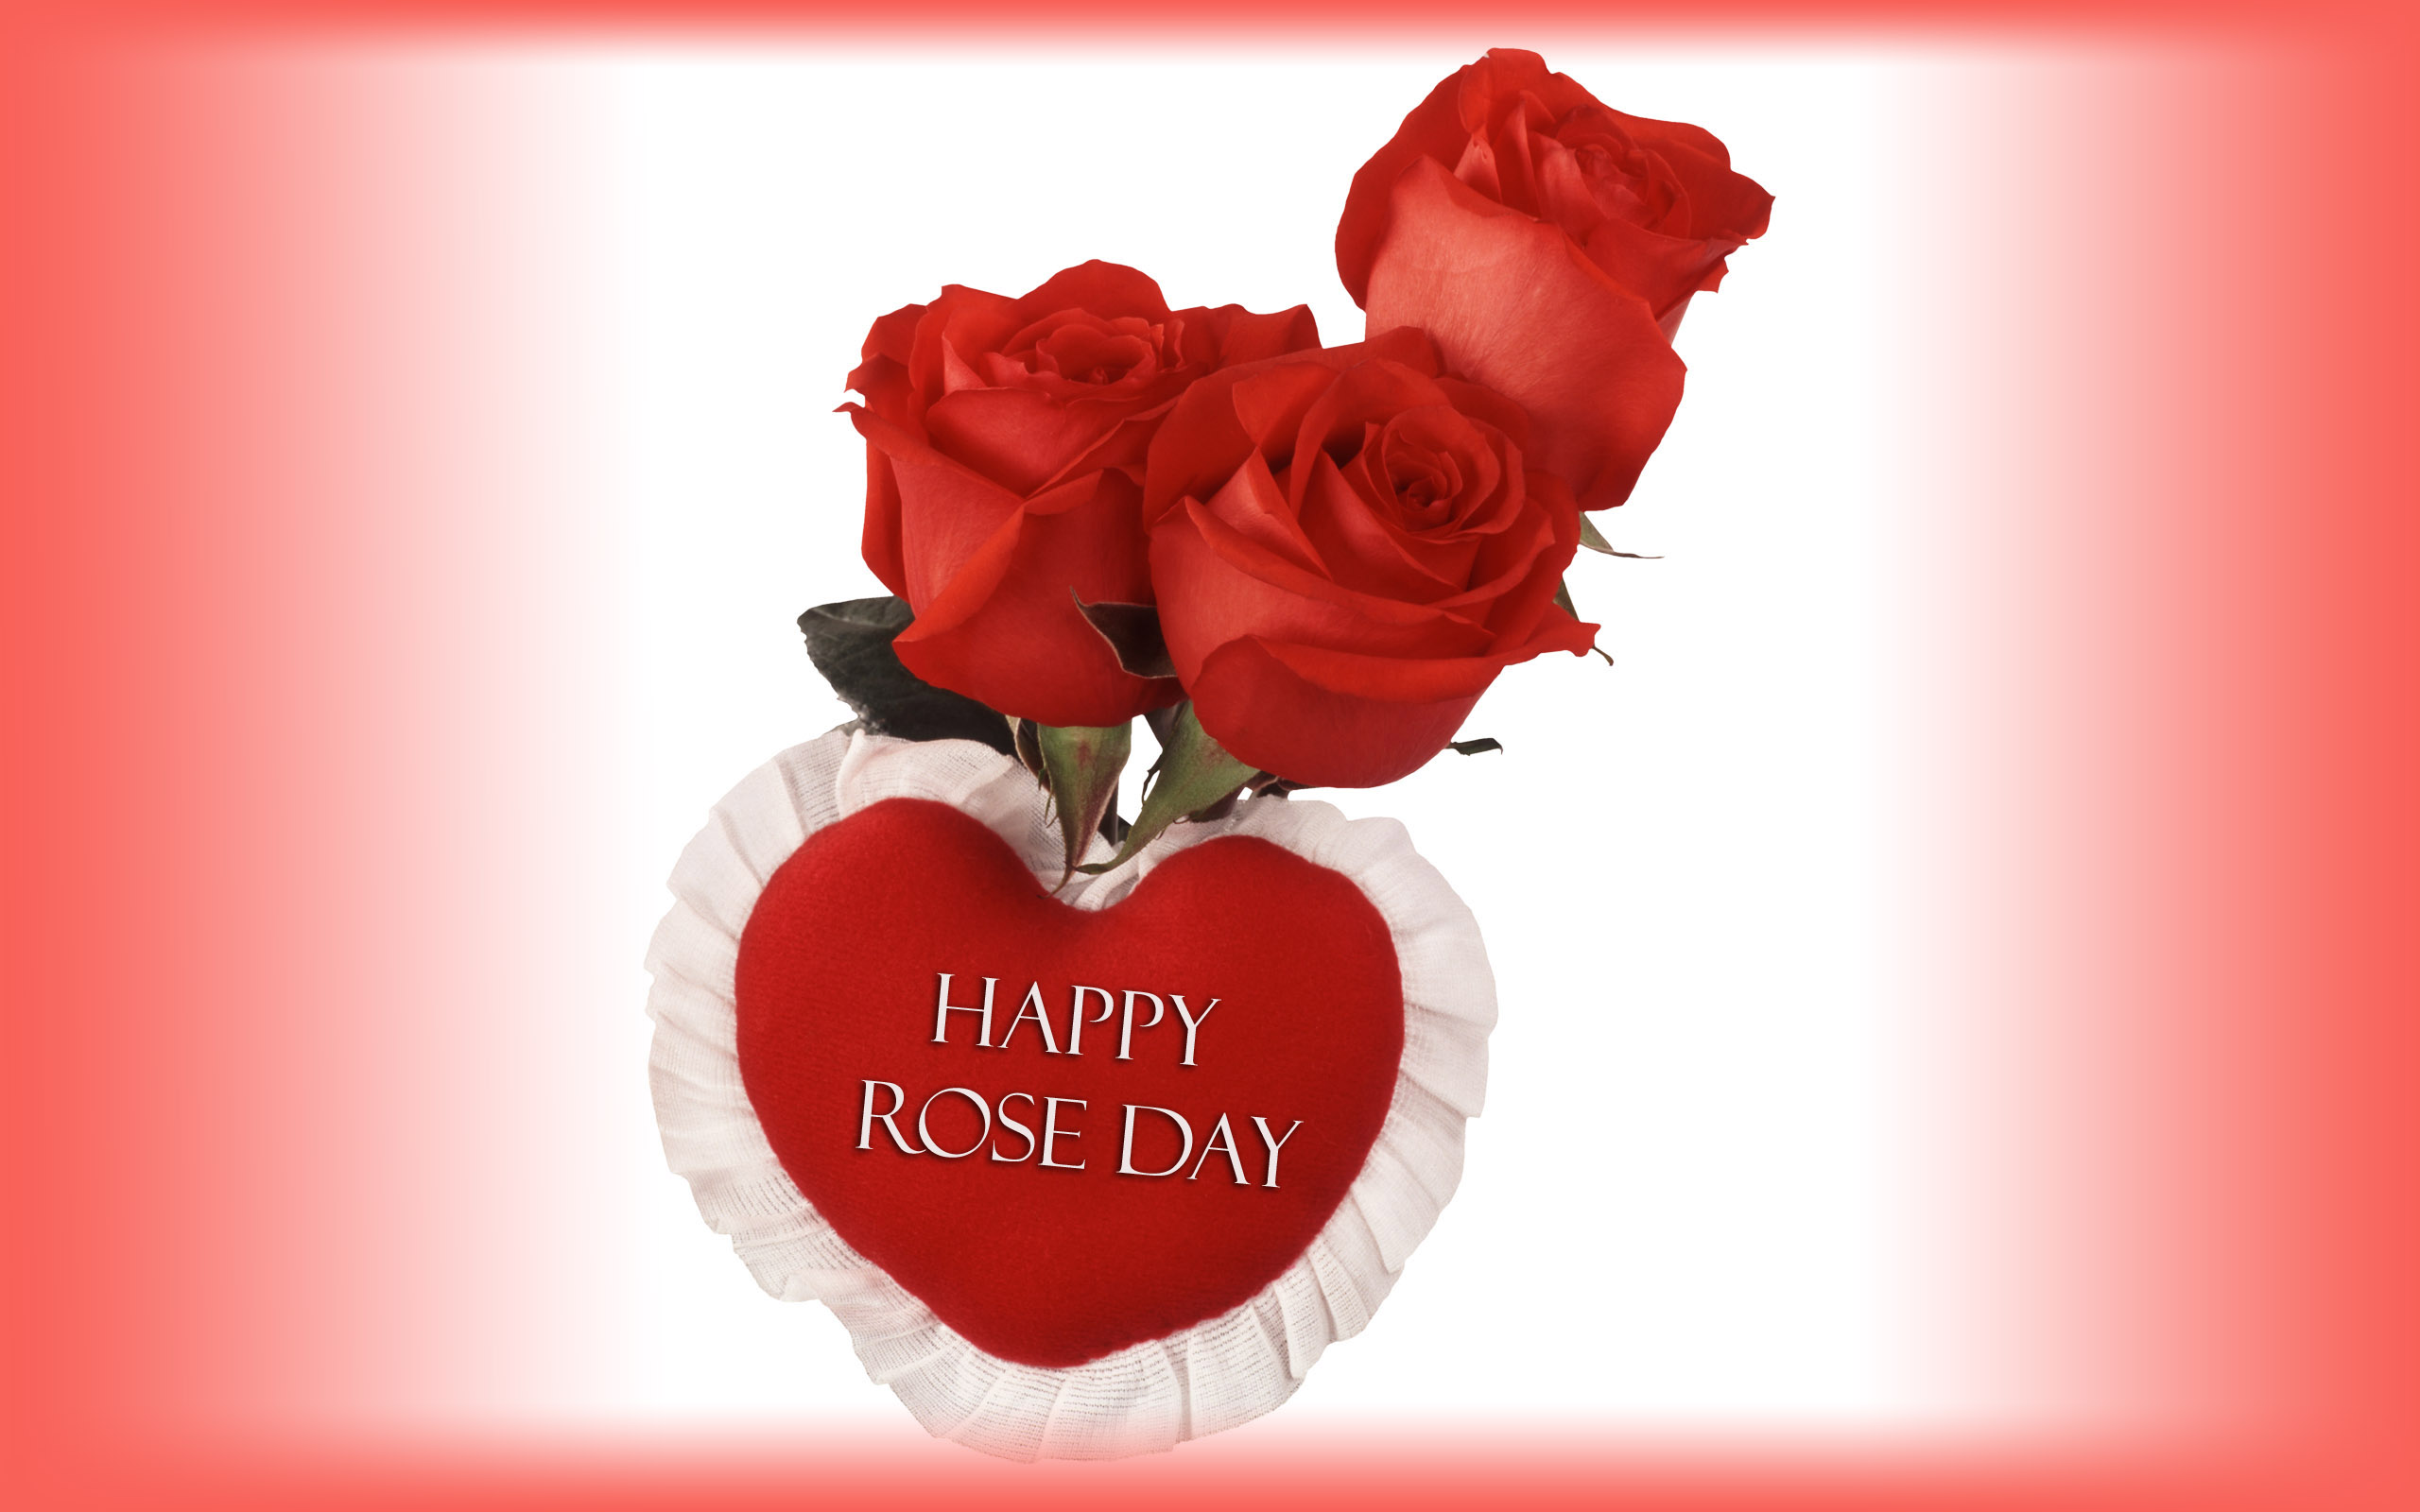 Happy Rose Day Images Pictures Wallpapers In Hd